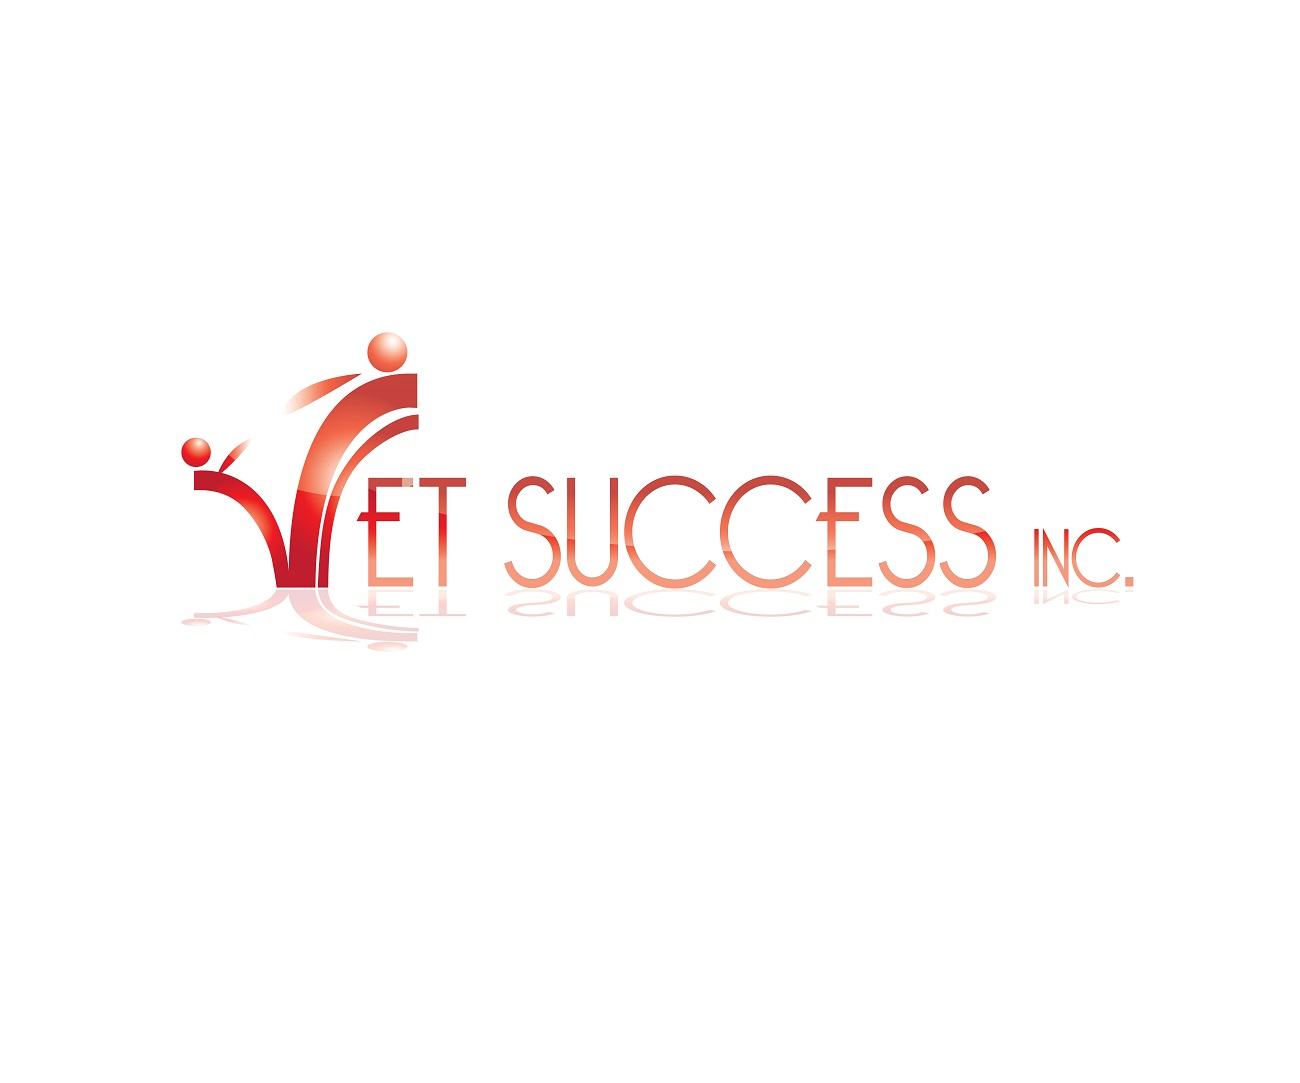 Logo Design by jhunzkie24 - Entry No. 45 in the Logo Design Contest Imaginative Logo Design for Vet Success Inc..